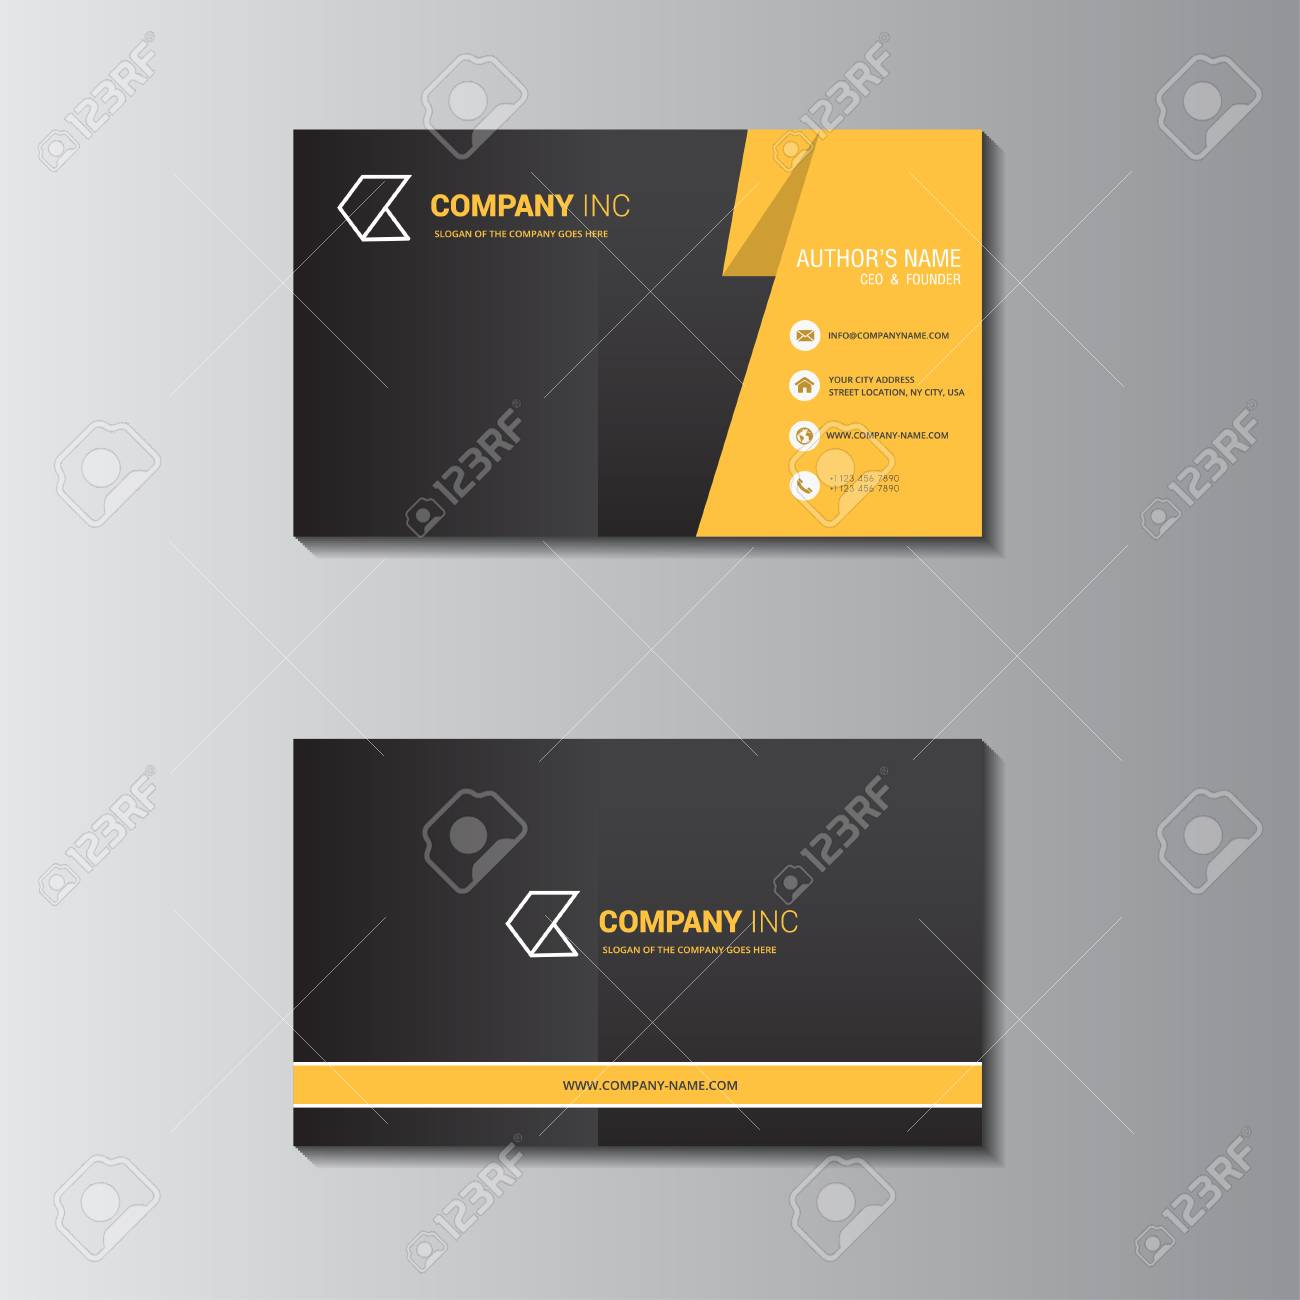 Vector Design Formal Yellow Modern Business Card Royalty Free ...